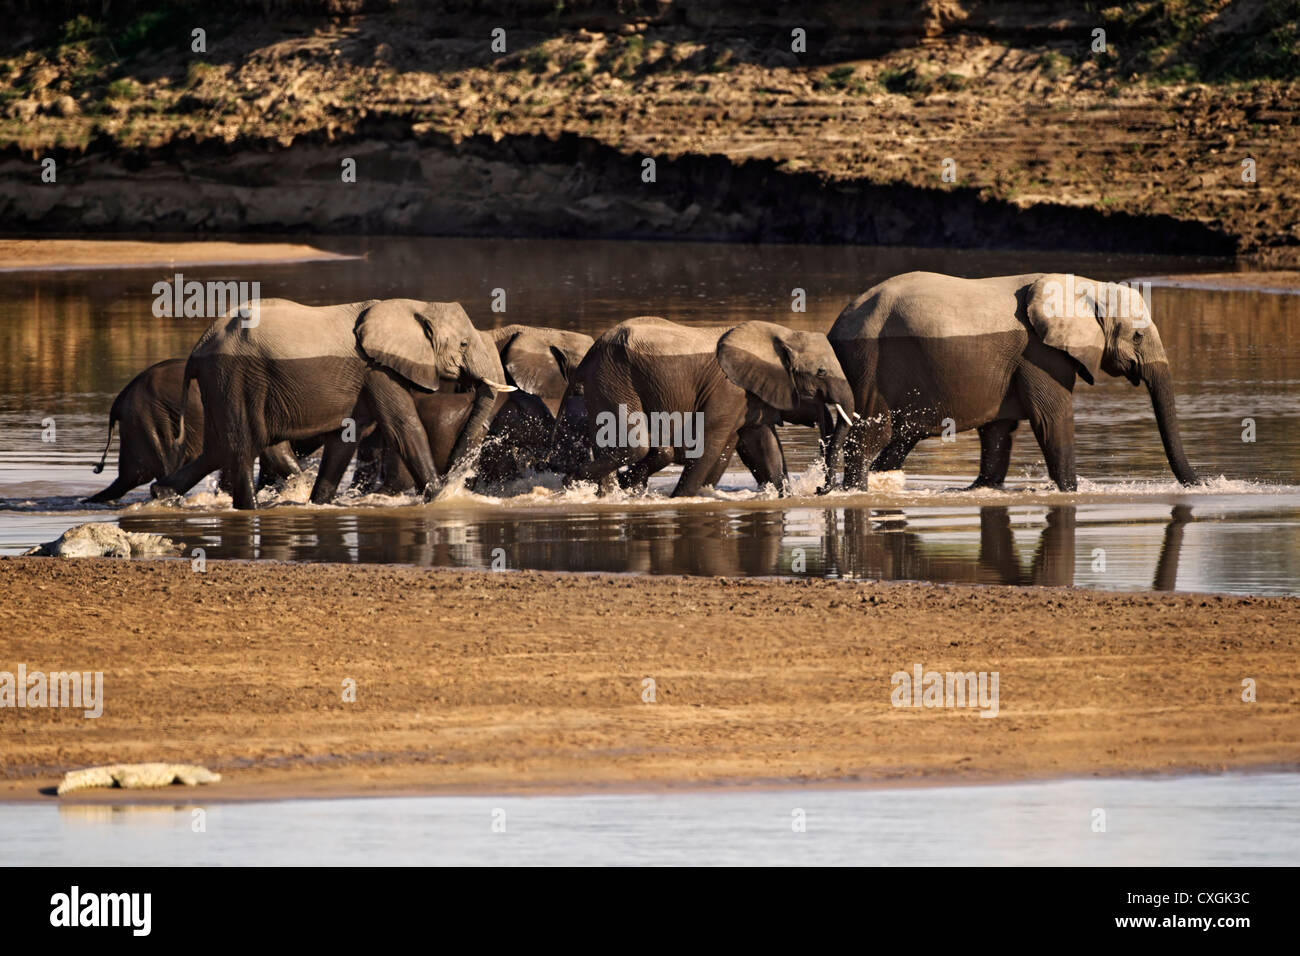 Herd of elephants at the Luangwa river. South Luangwa National Park, Zambia, Sambia, Nsefu Sector, Loxodonta africana - Stock Image